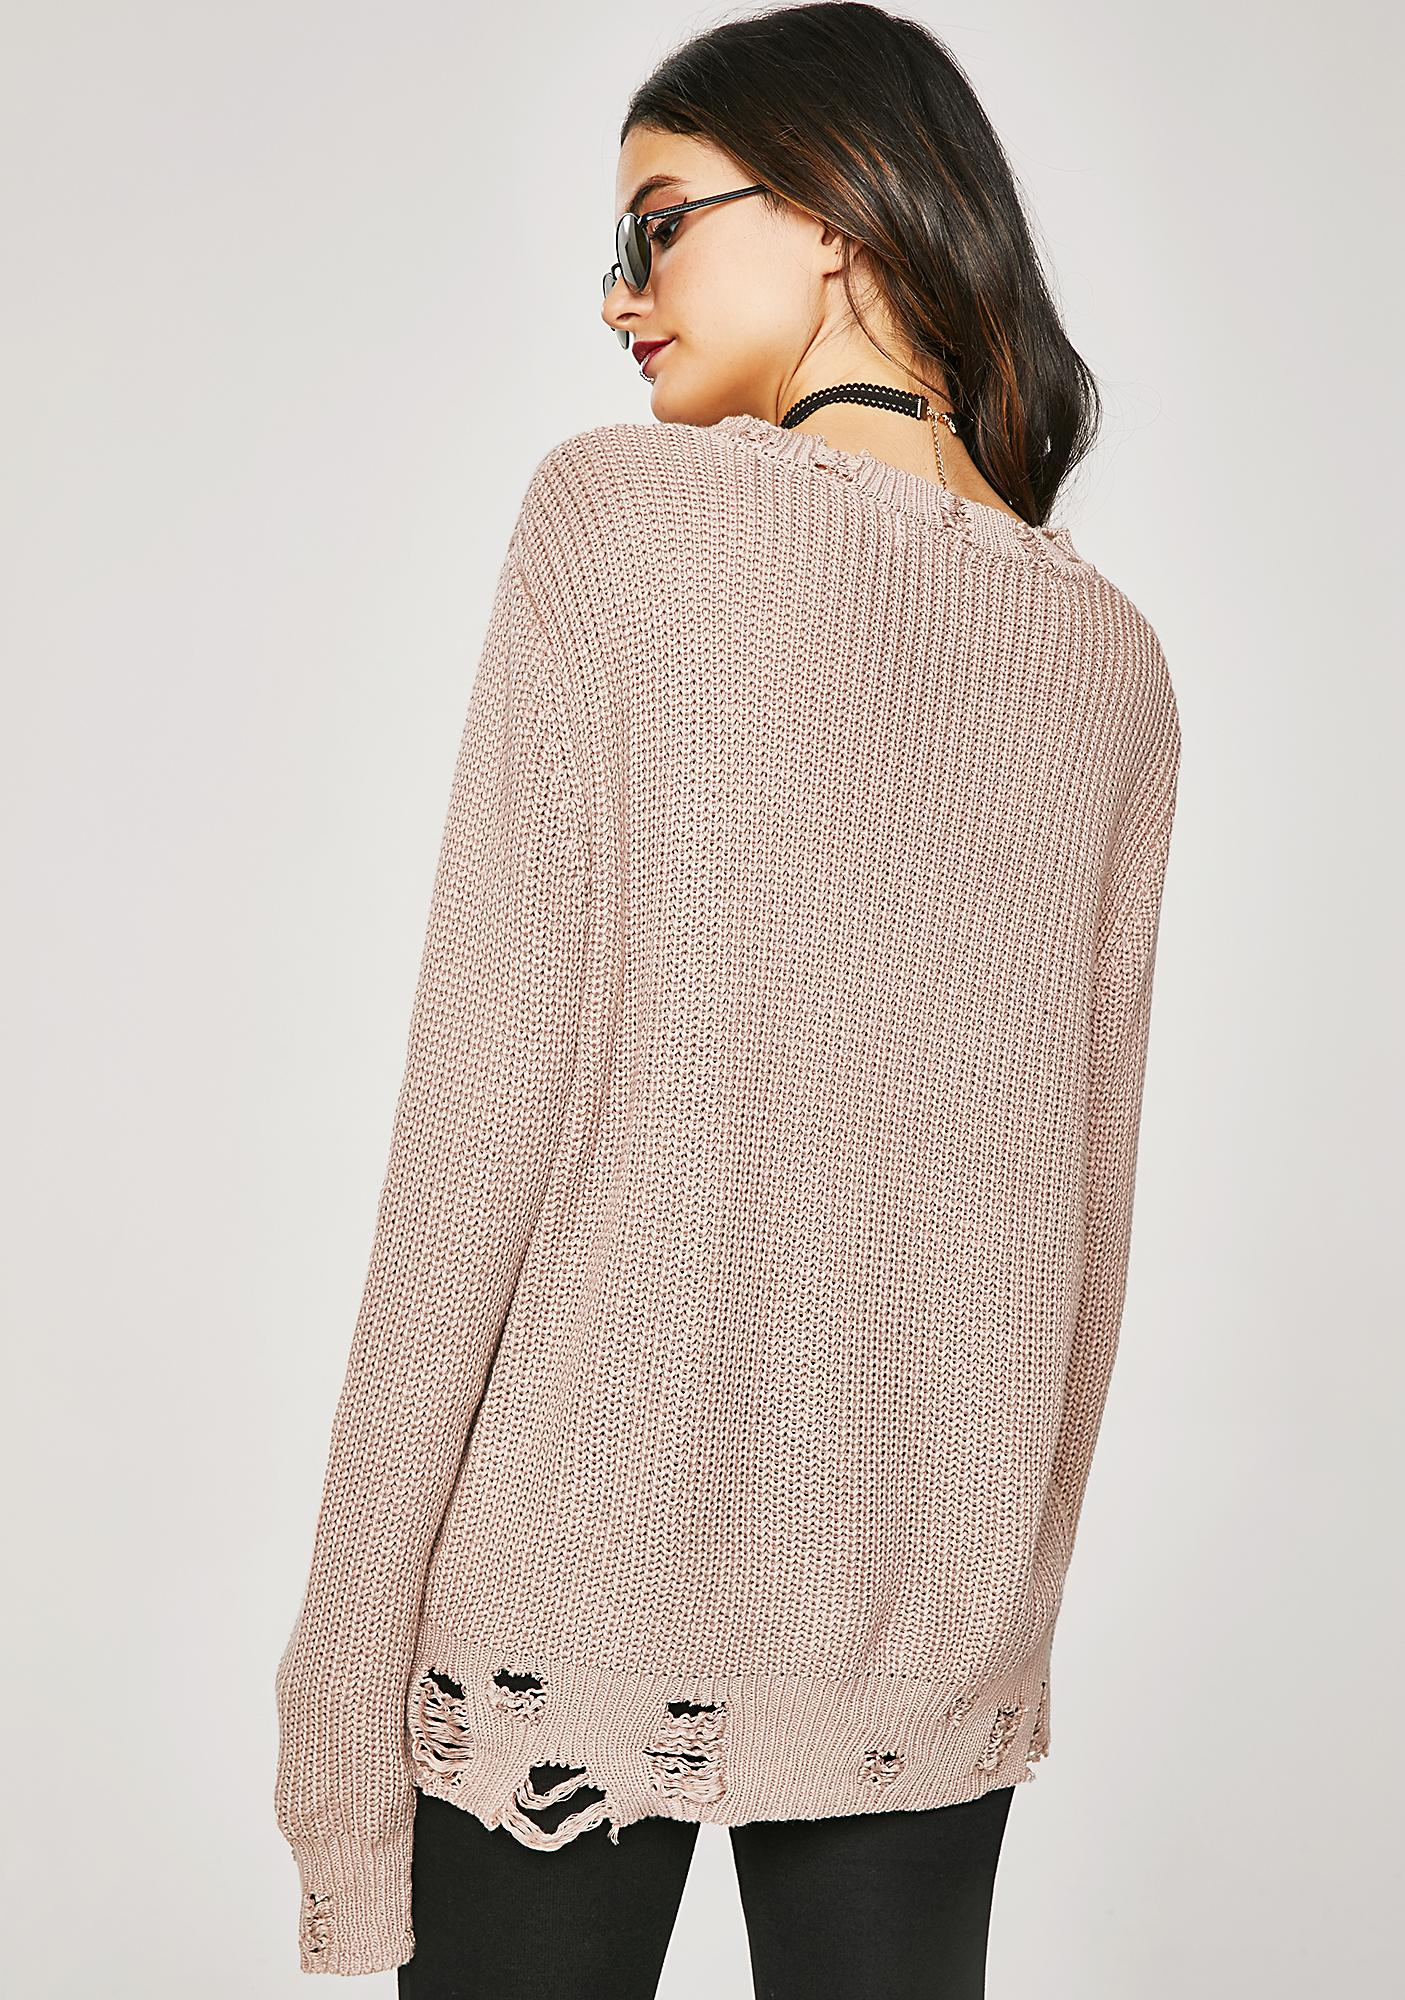 Now What Distressed Sweater